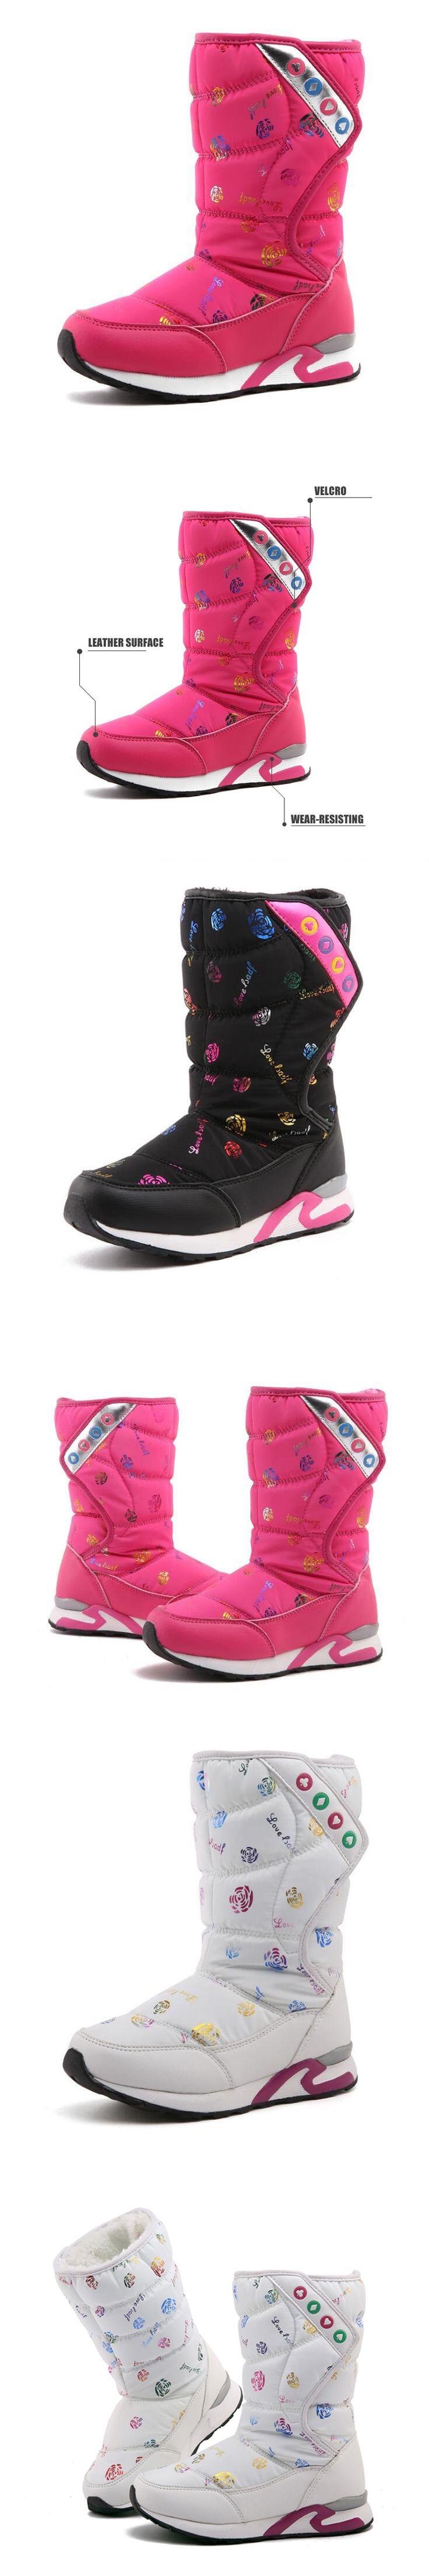 Kids snow boots high quality children boots platform winter shoes beautiful print girls boots 3 colors size 26-37